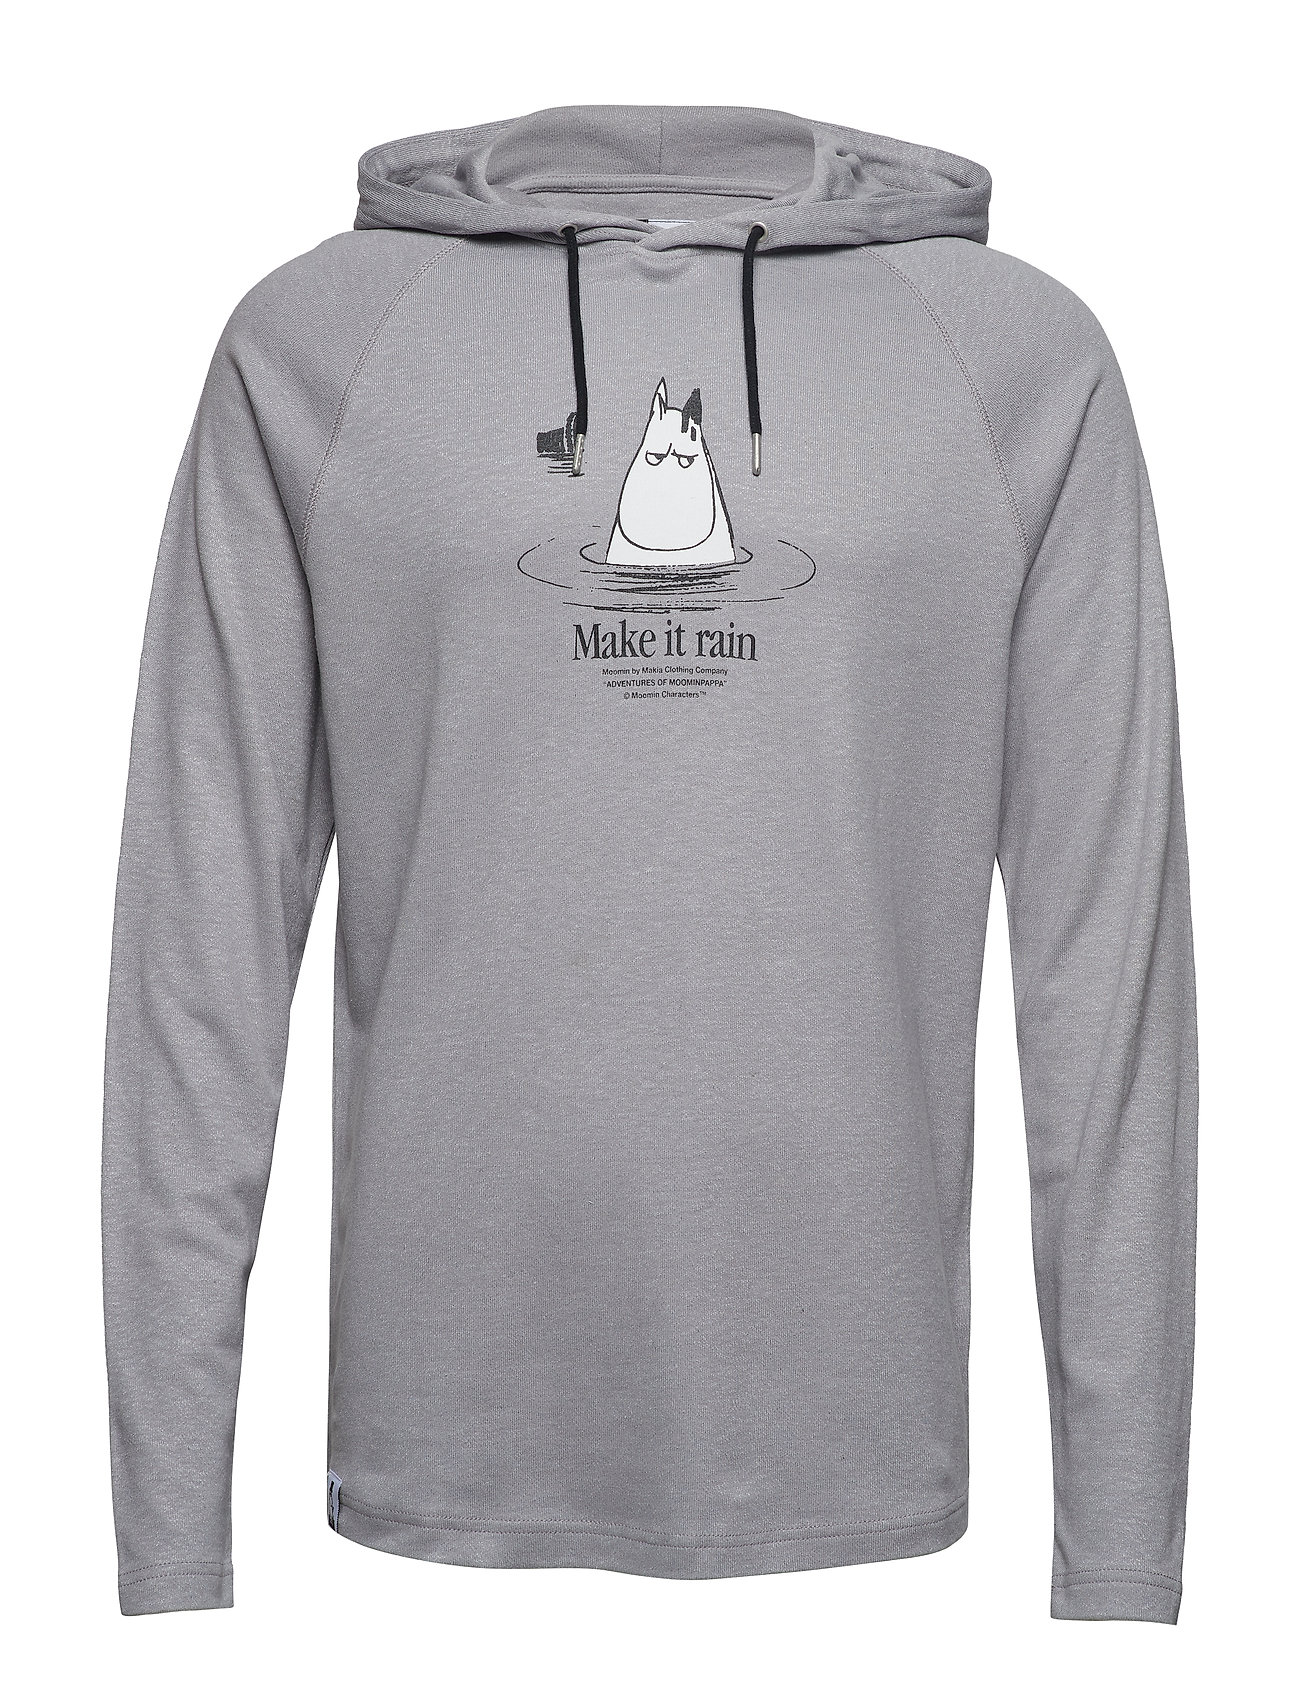 Makia KYLPY HOODED SWEATSHIRT Ögrönlar